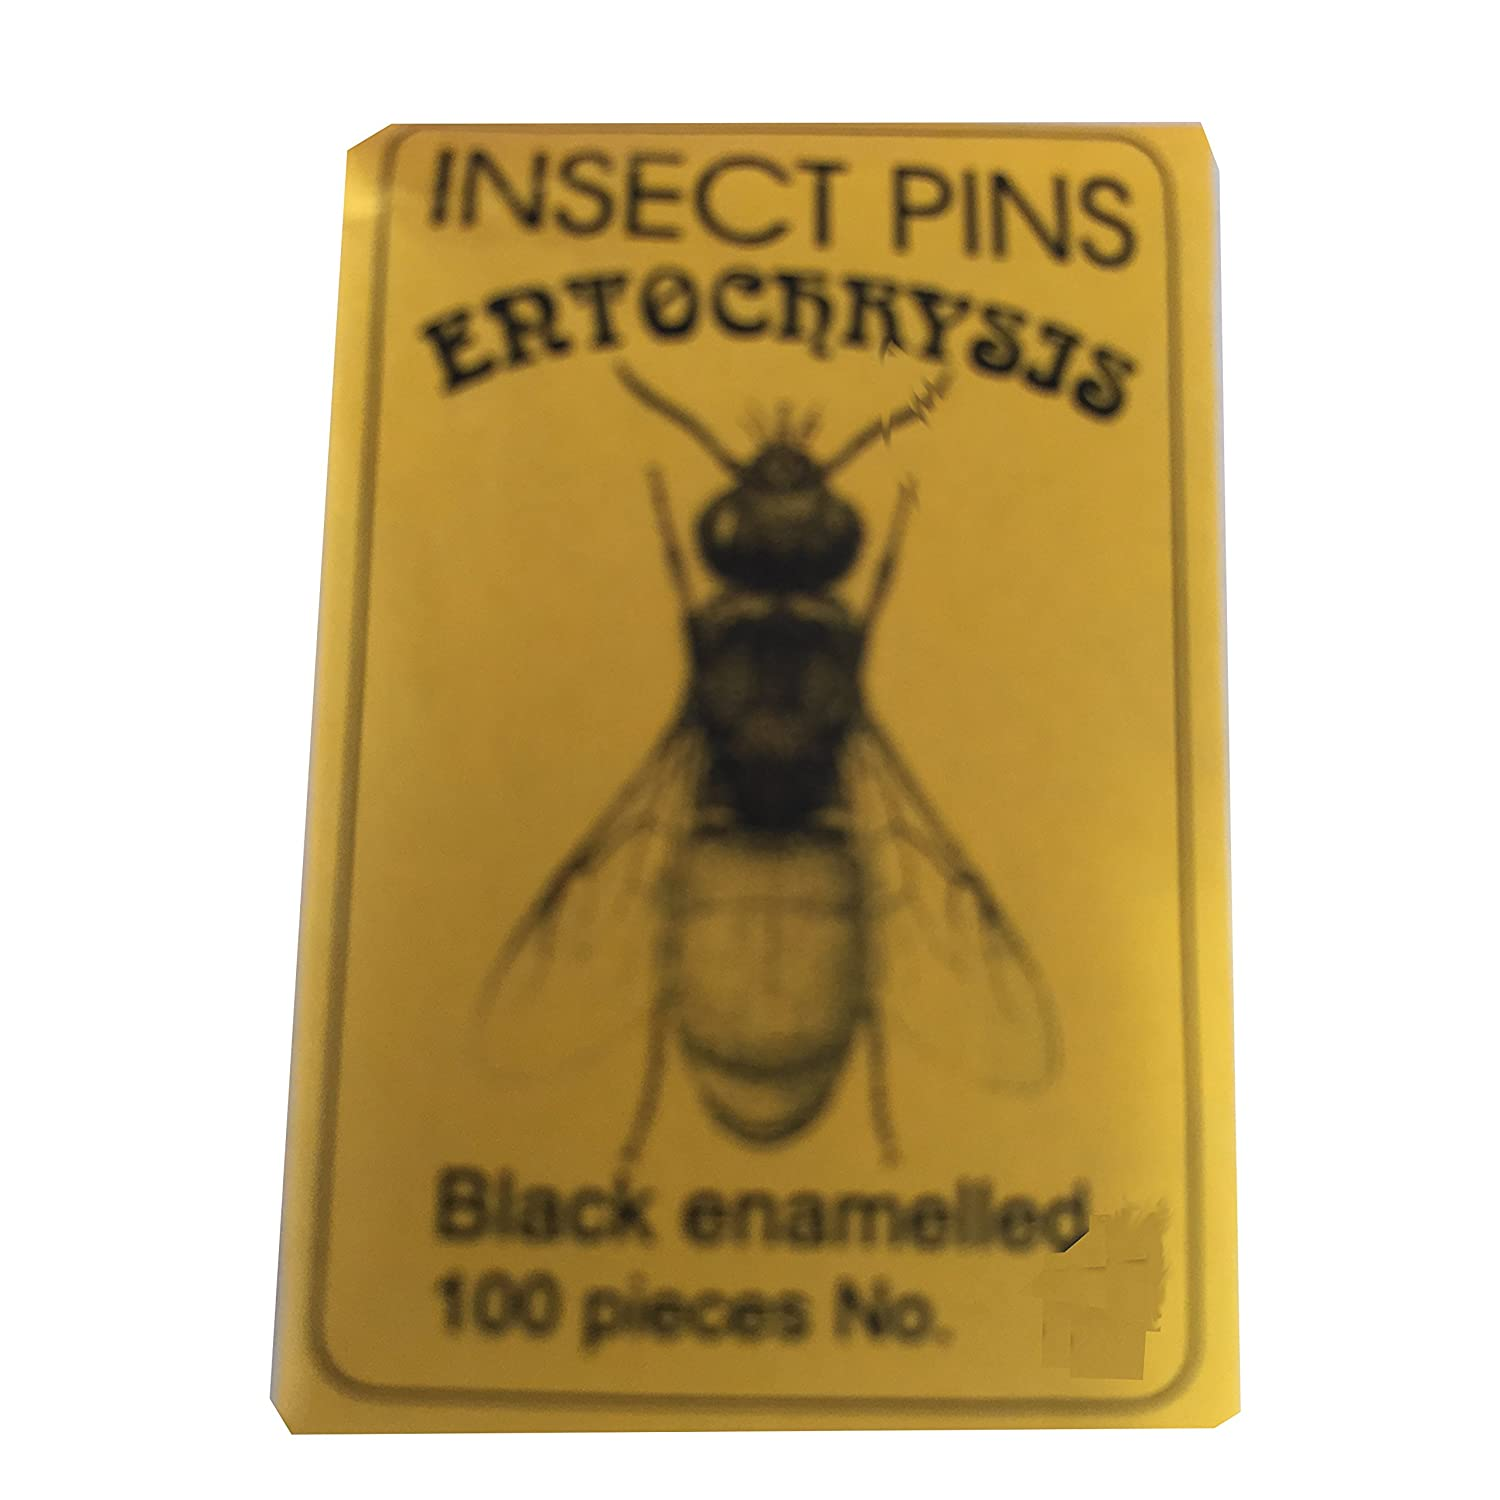 Entochrysis black mounting insect pins 100 pcs size 1 entomology butterflies